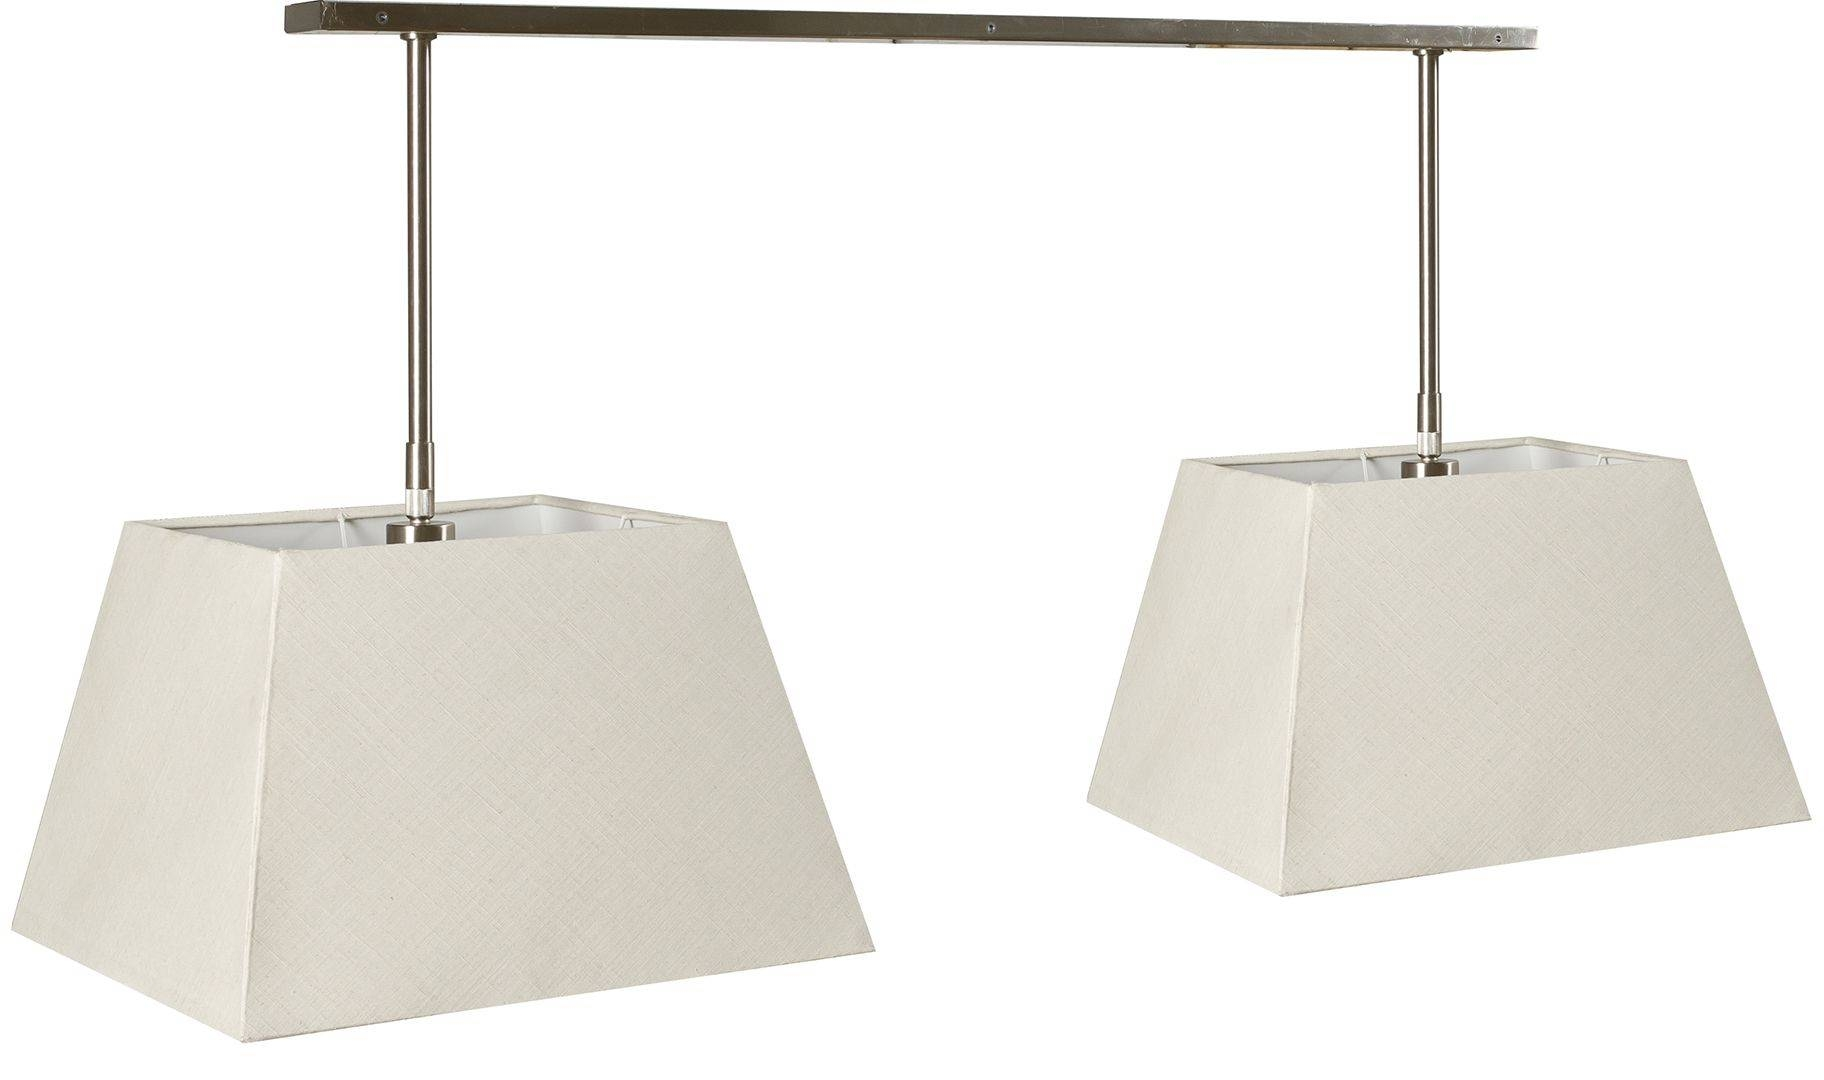 Pendant And Ceiling Lights – Woods Furniture, Dorchester, Dorset With Double Pendant Lights (View 12 of 15)